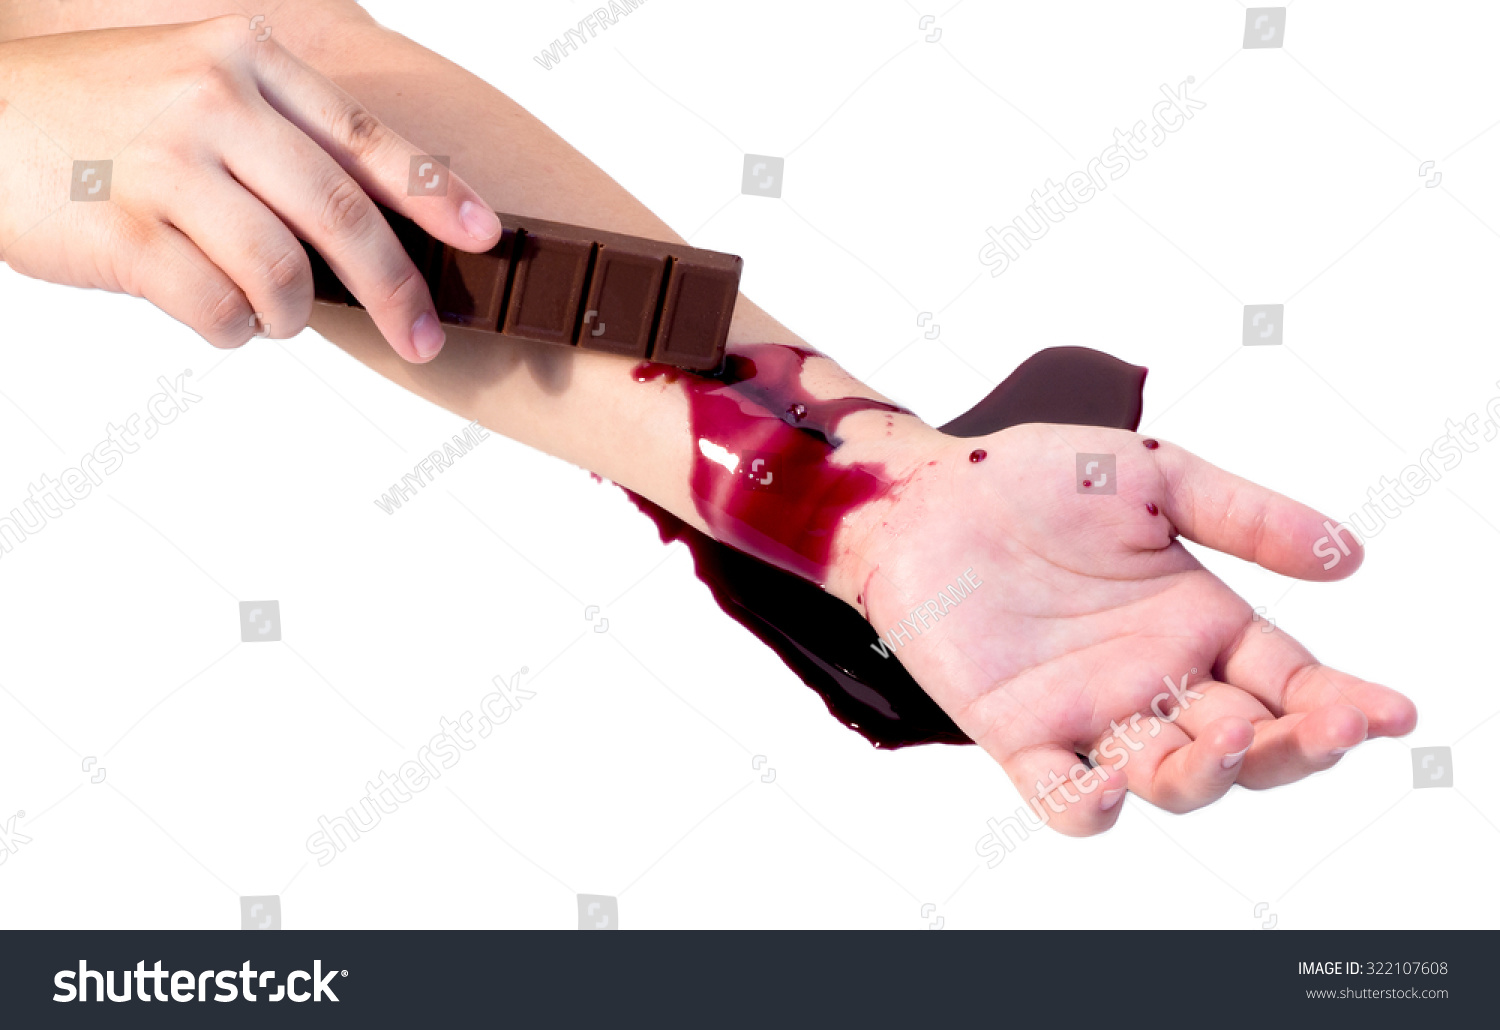 How to cut yourself